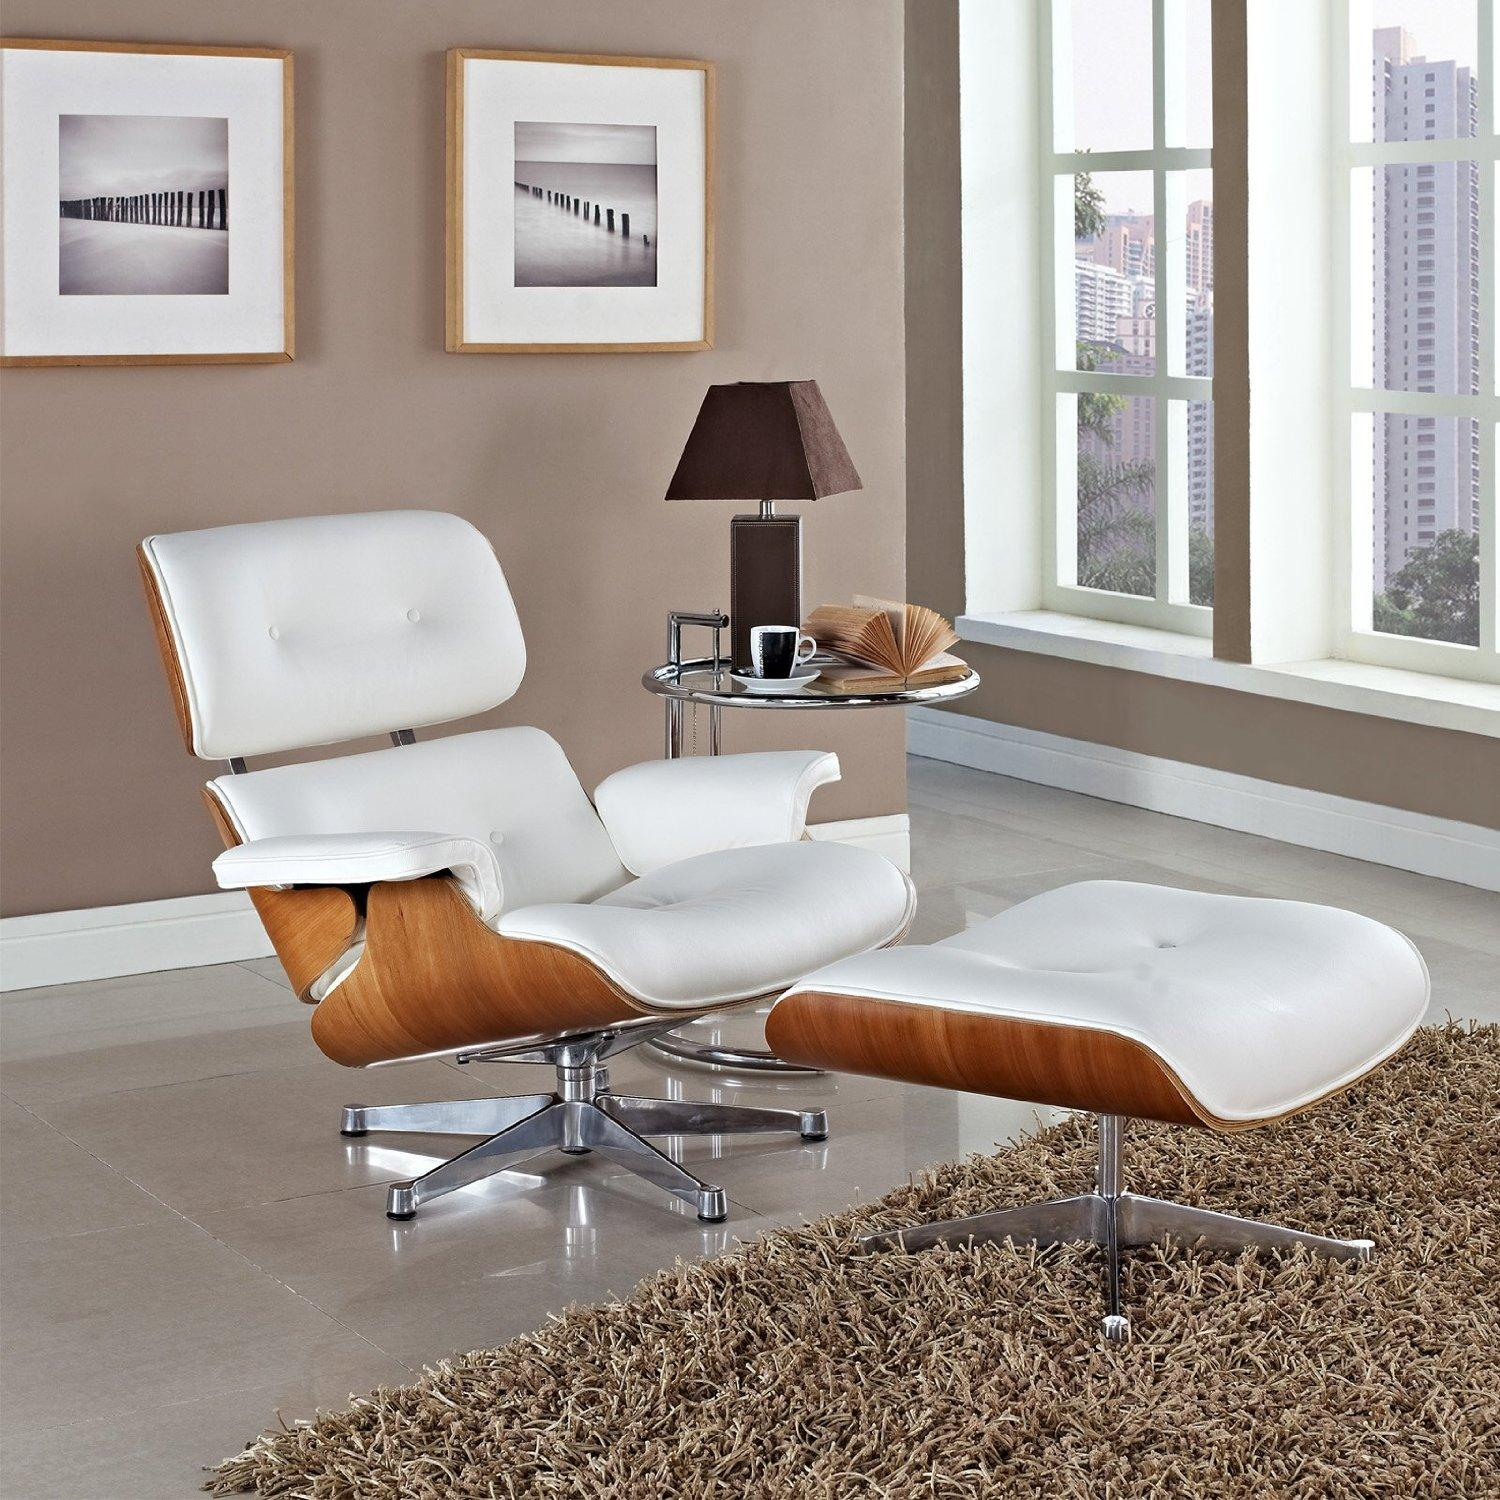 Eames molded plywood chair living room - View Larger